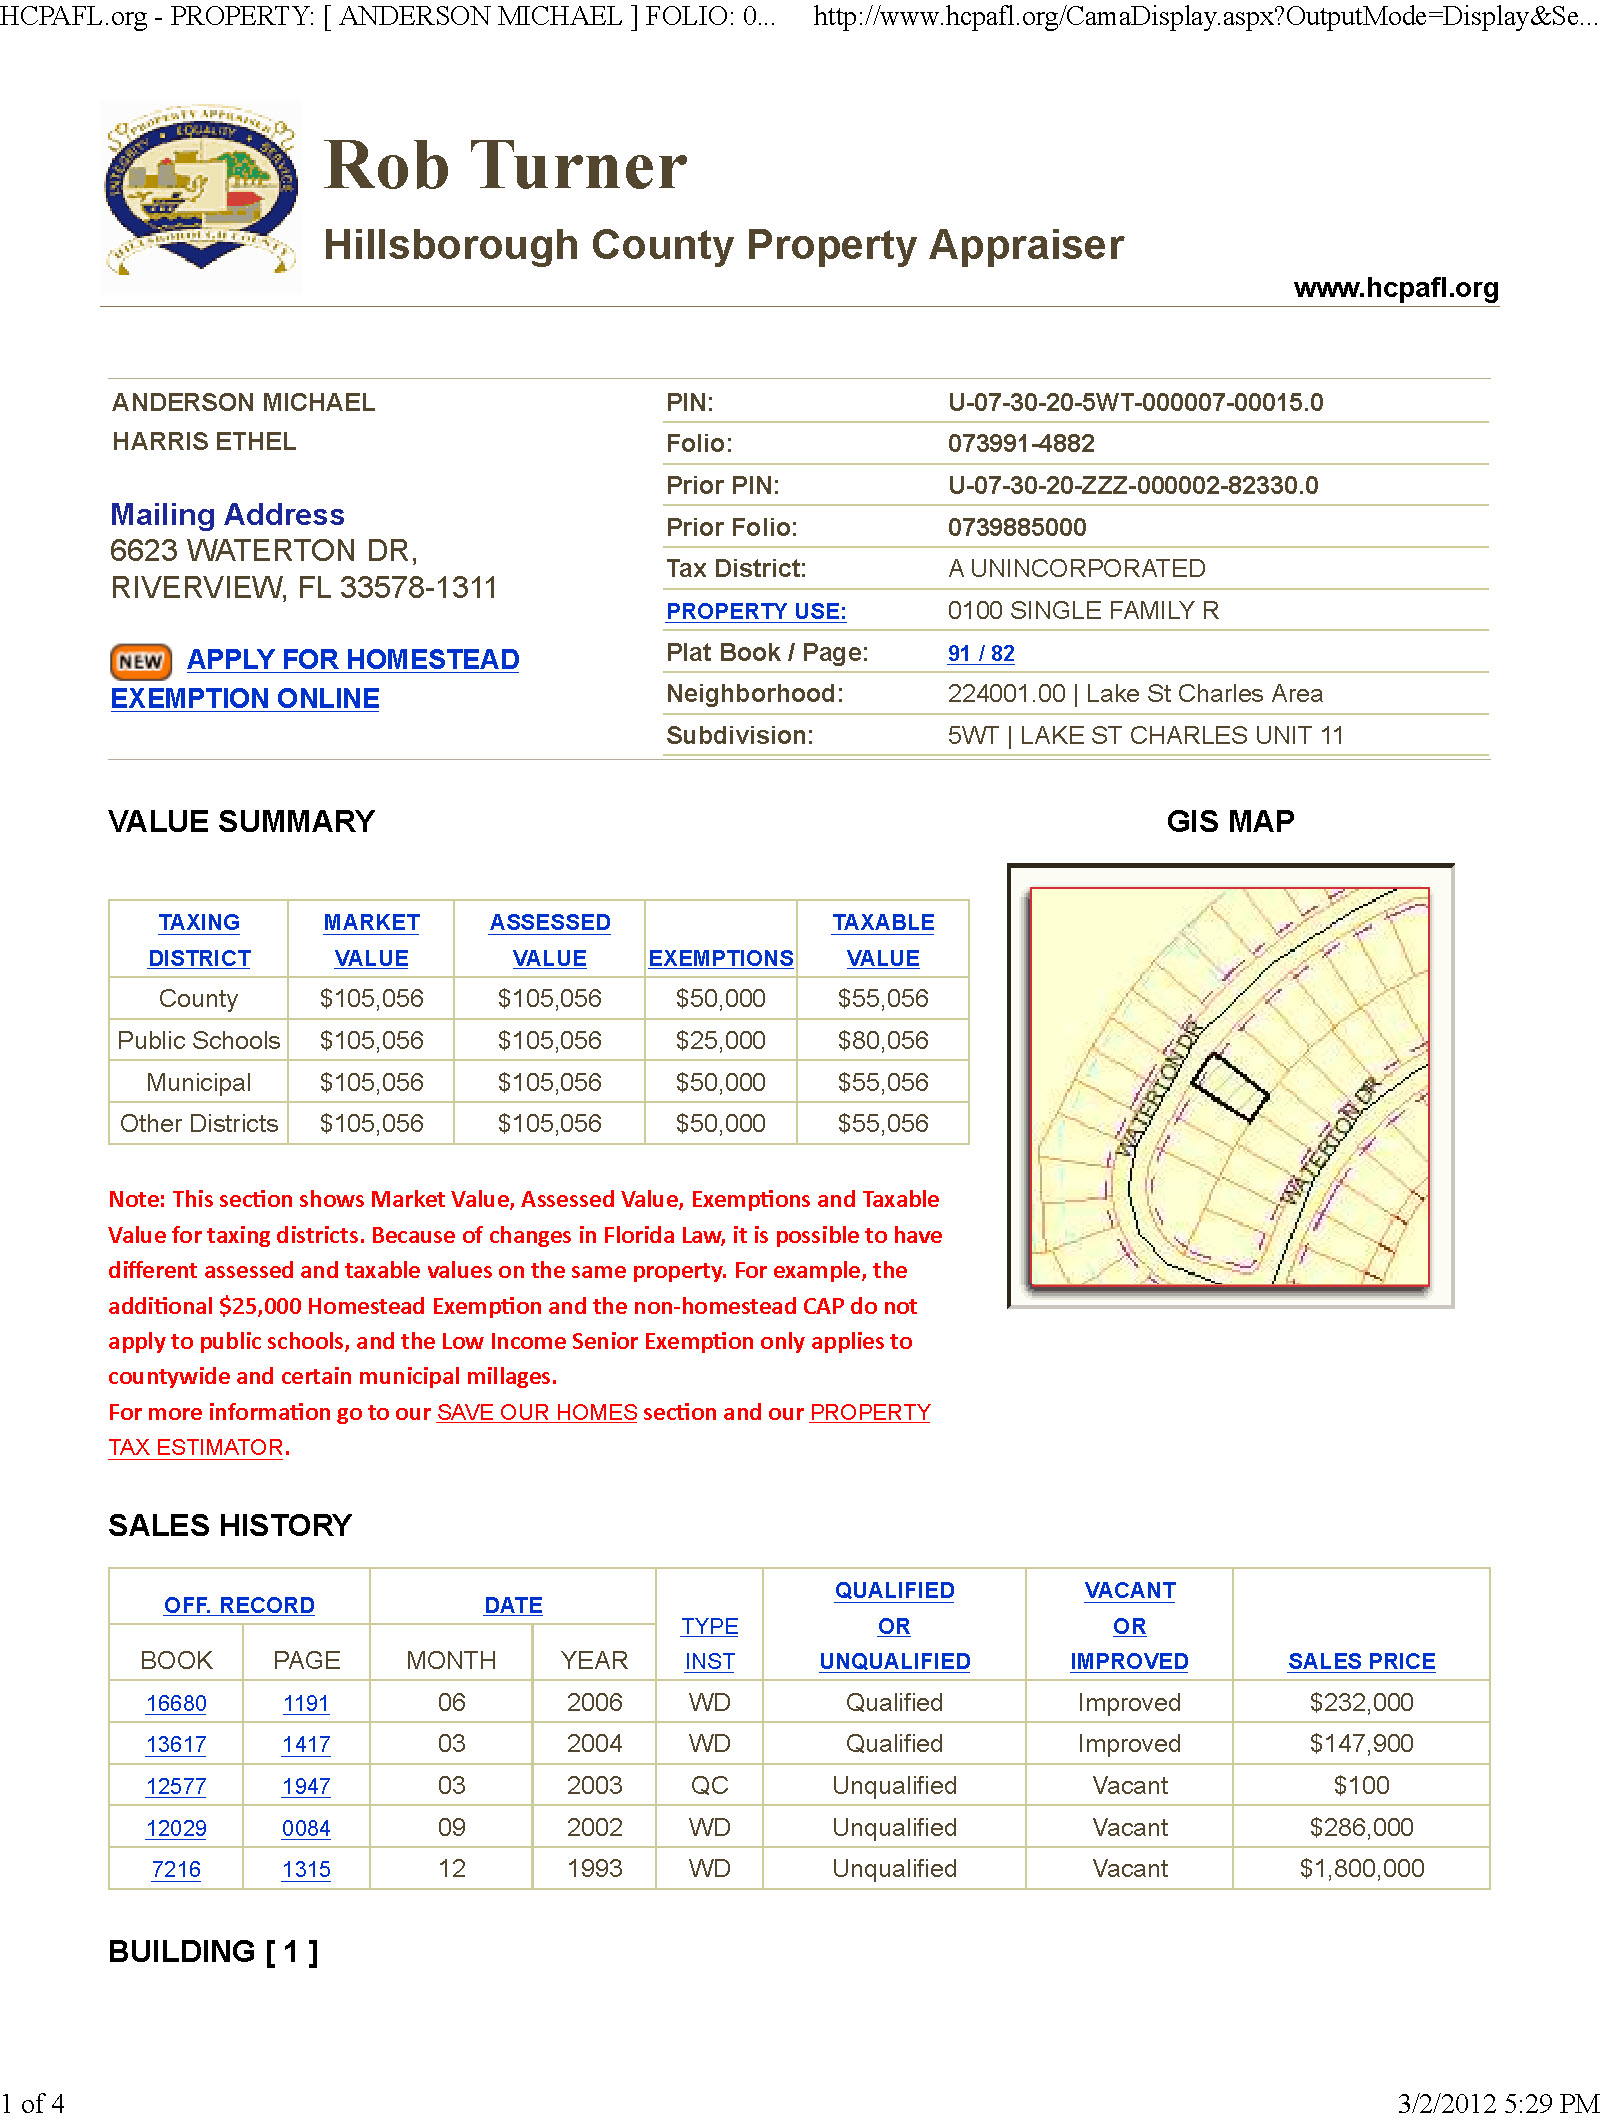 Copy of anderson ethel property tax info1.jpg